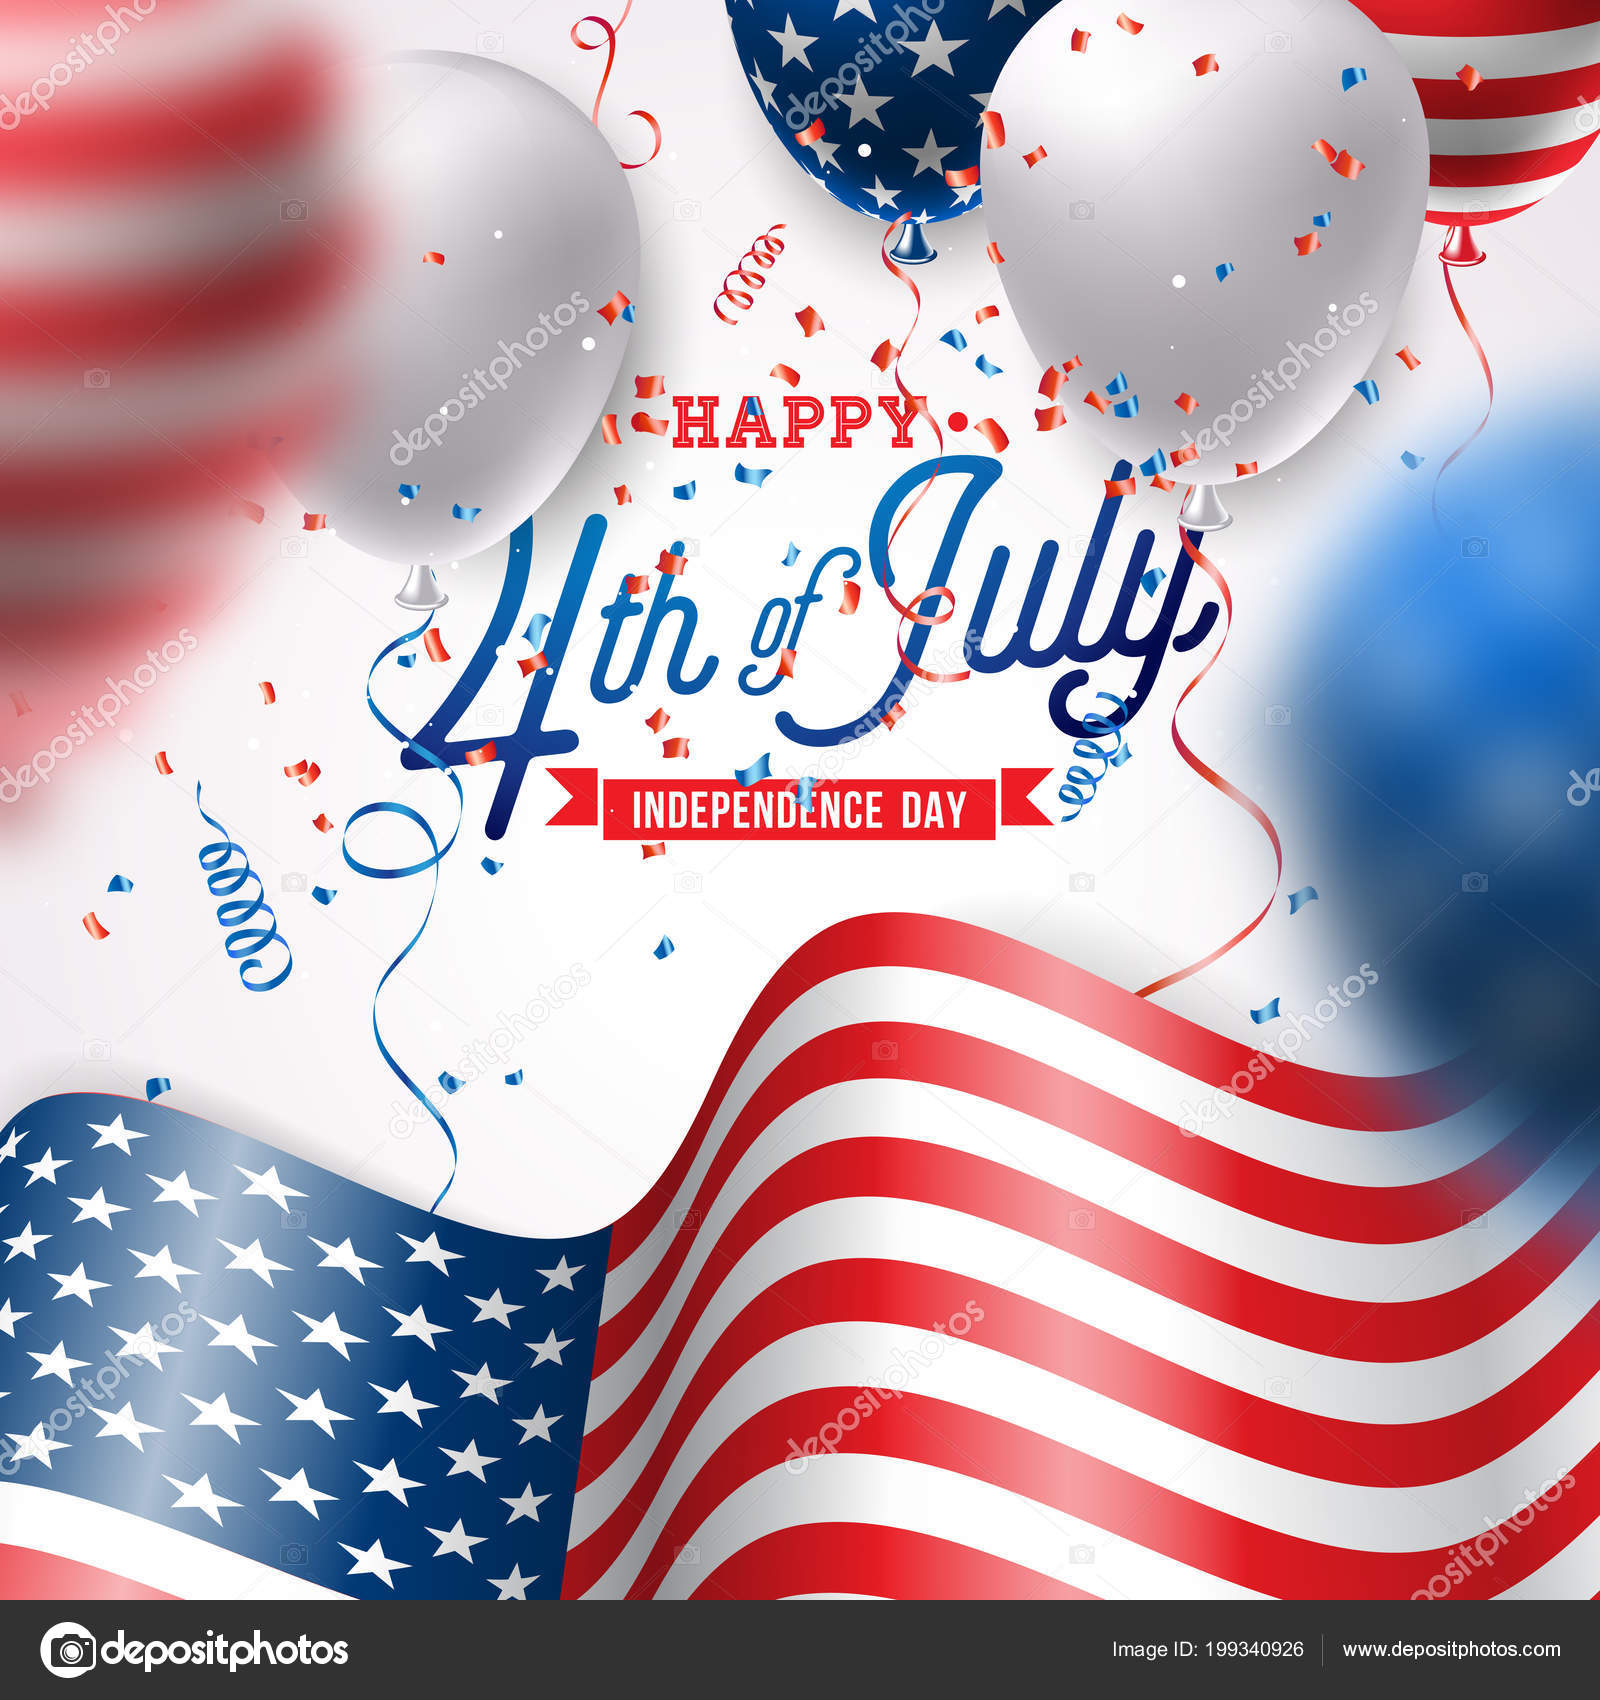 943dedb7649 Independence Day of the USA Vector Illustration. Fourth of July Design with  Air Balloon and Flag on White Background for Banner